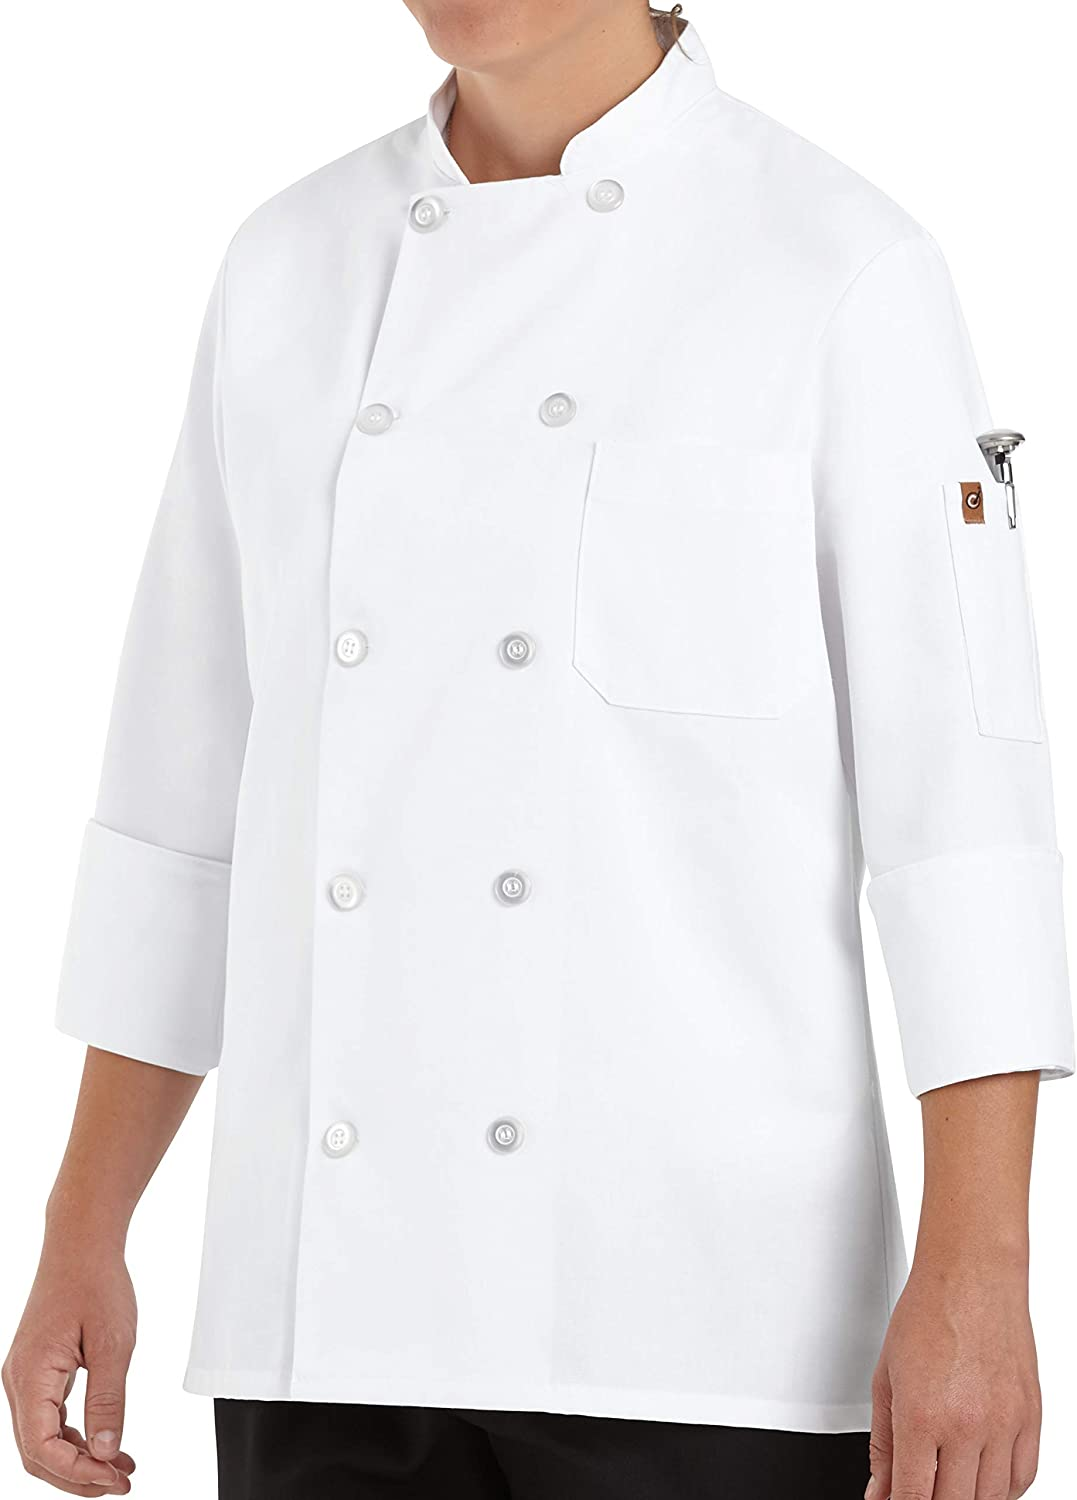 Chef Designs Women's Chef Coat: Clothing